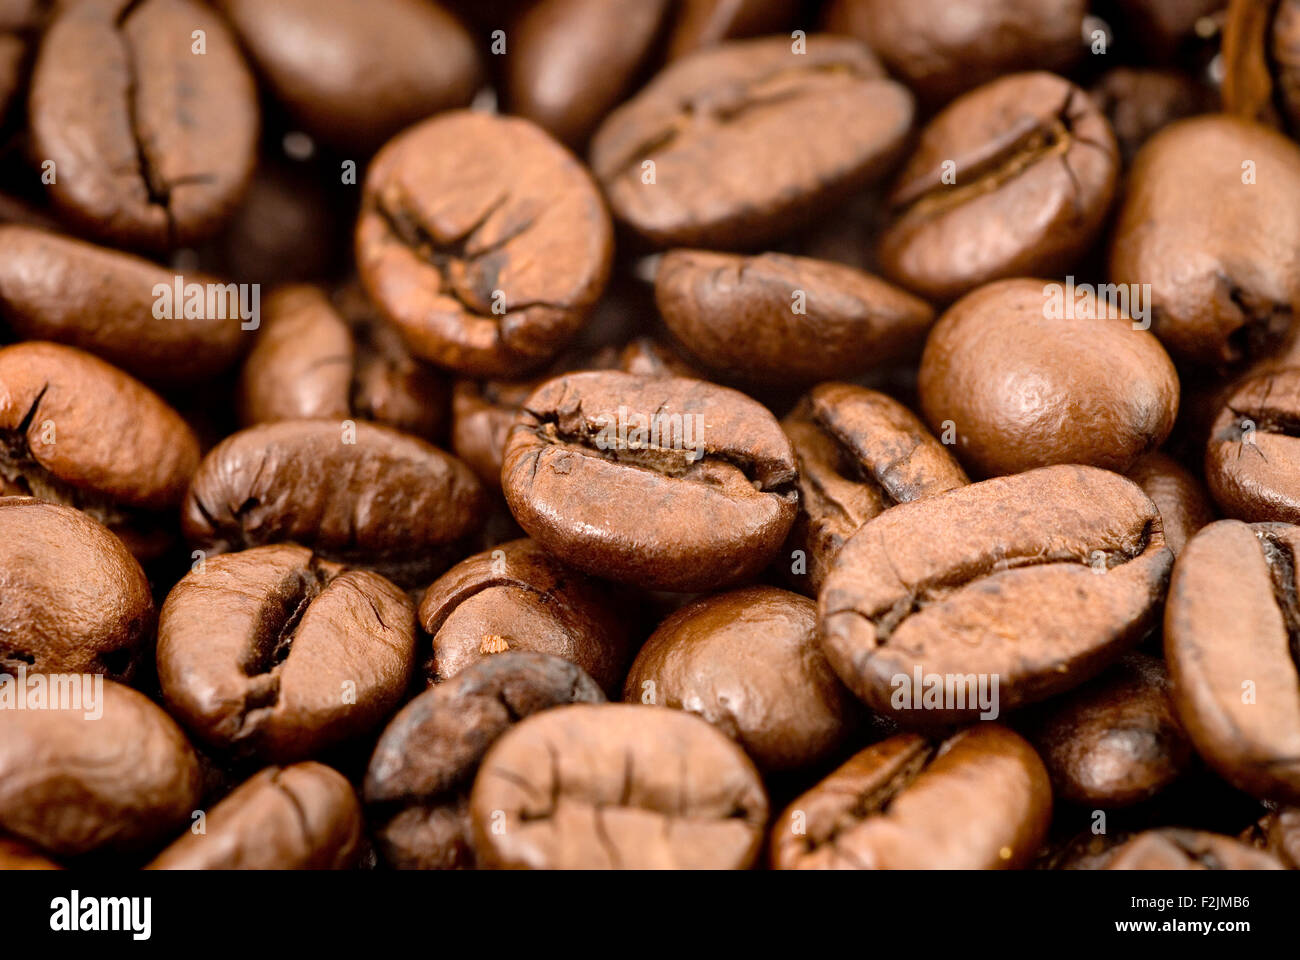 Coffee beans studio shot macro close-up - Stock Image